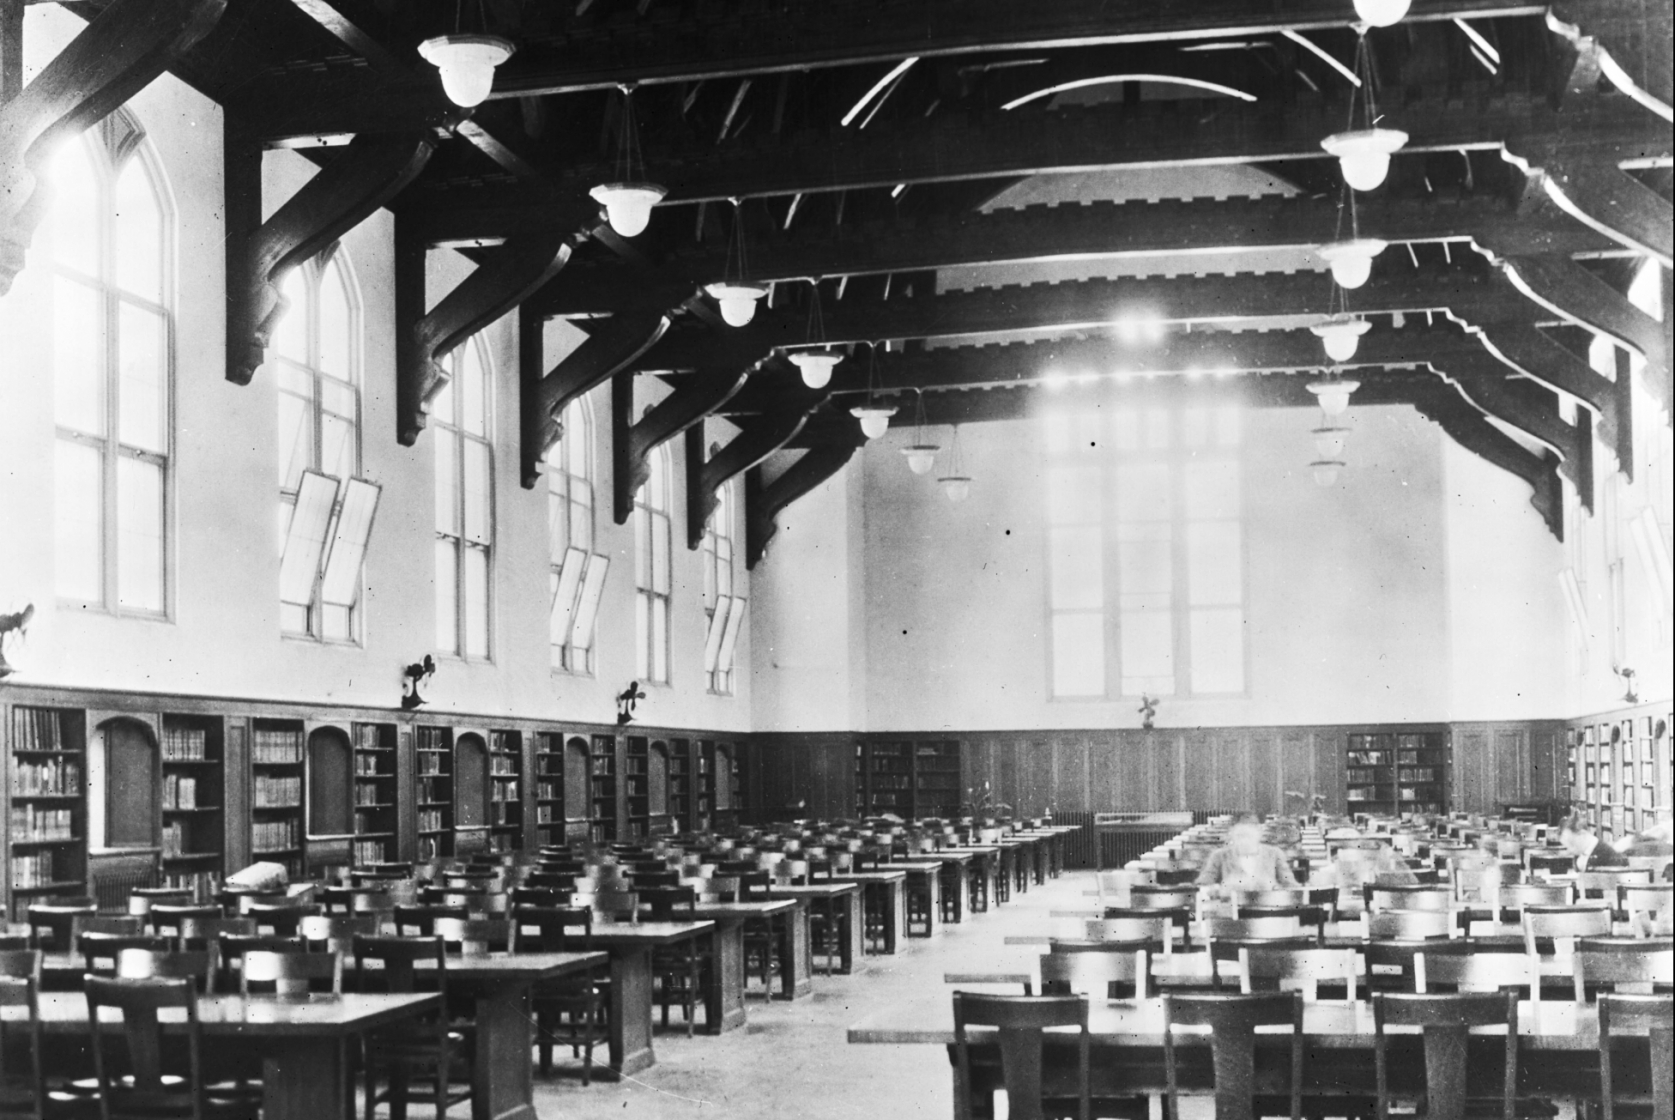 Readers in the Grand Reading Room